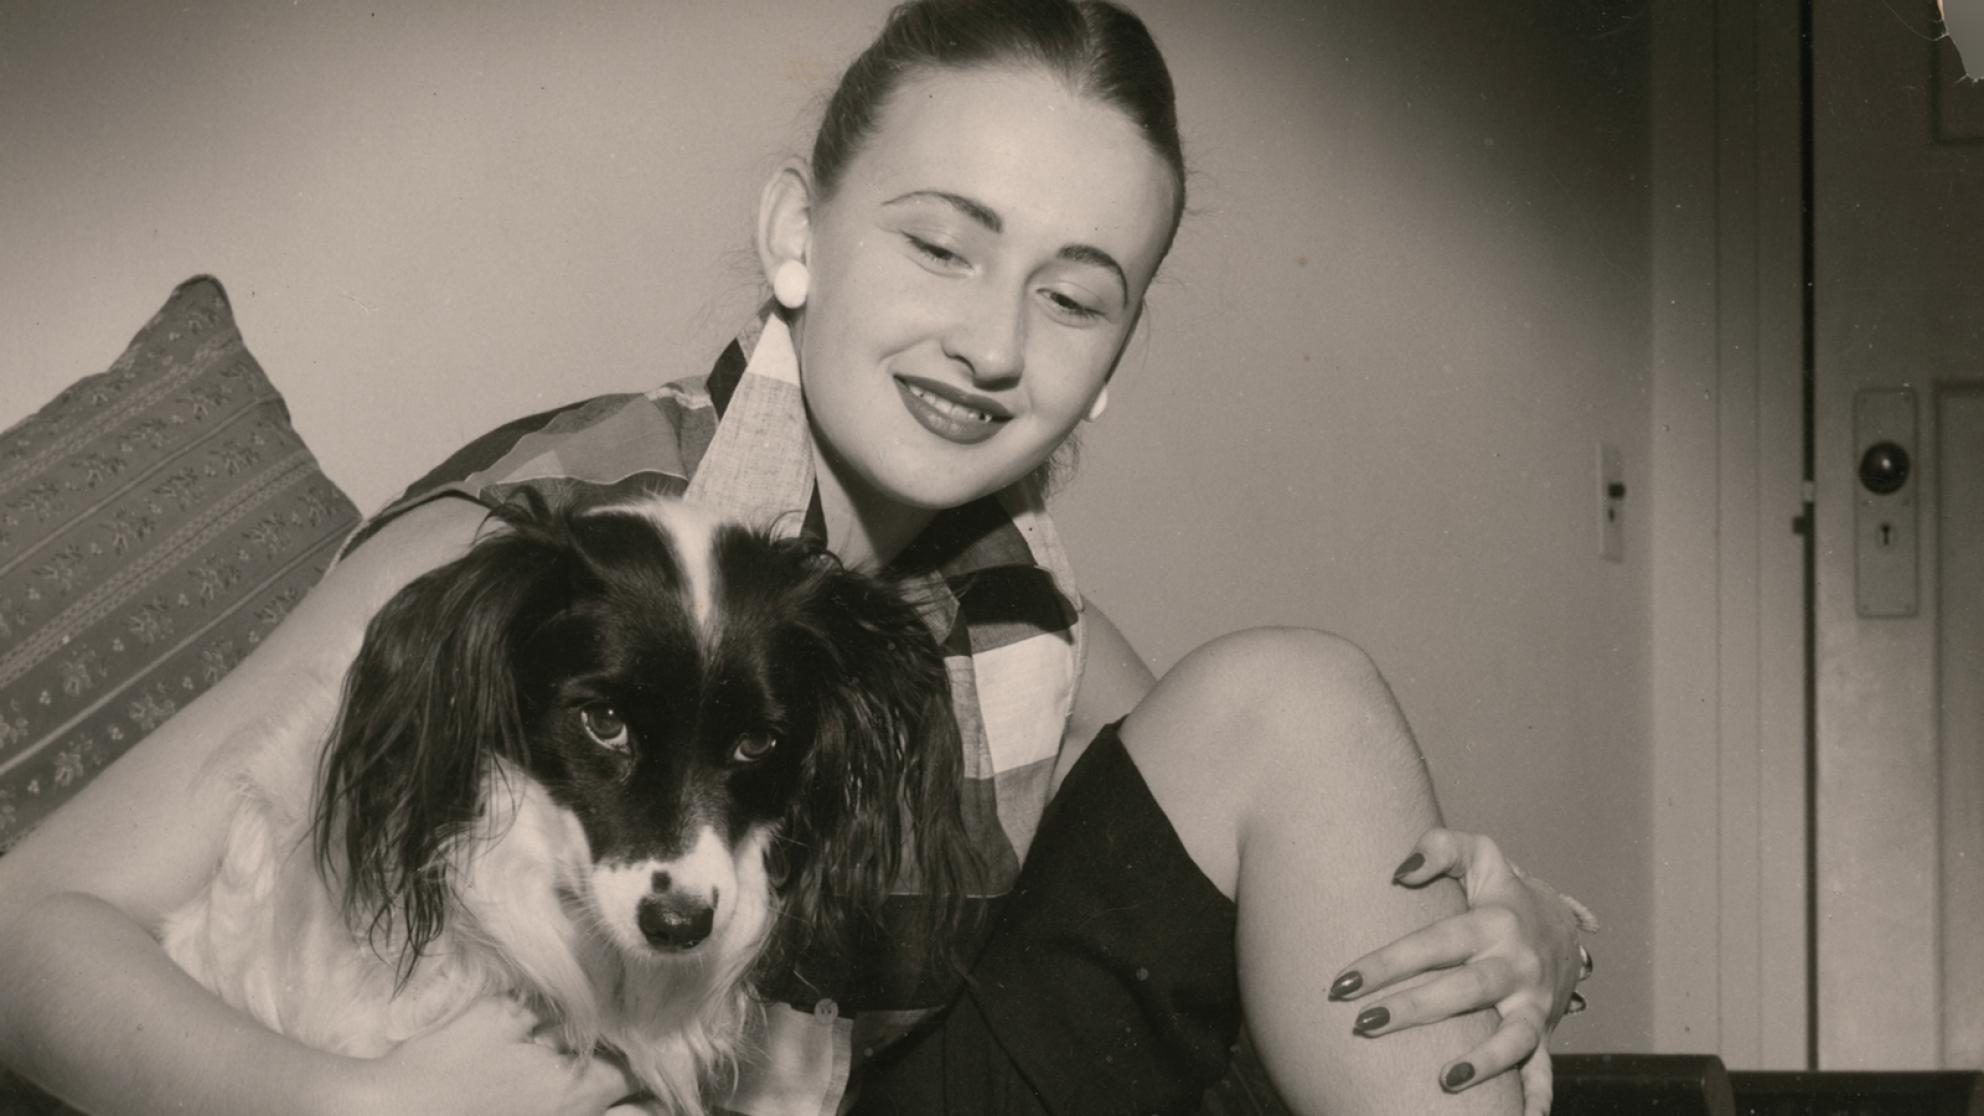 Amber Mae Cecil pictured with her dog.